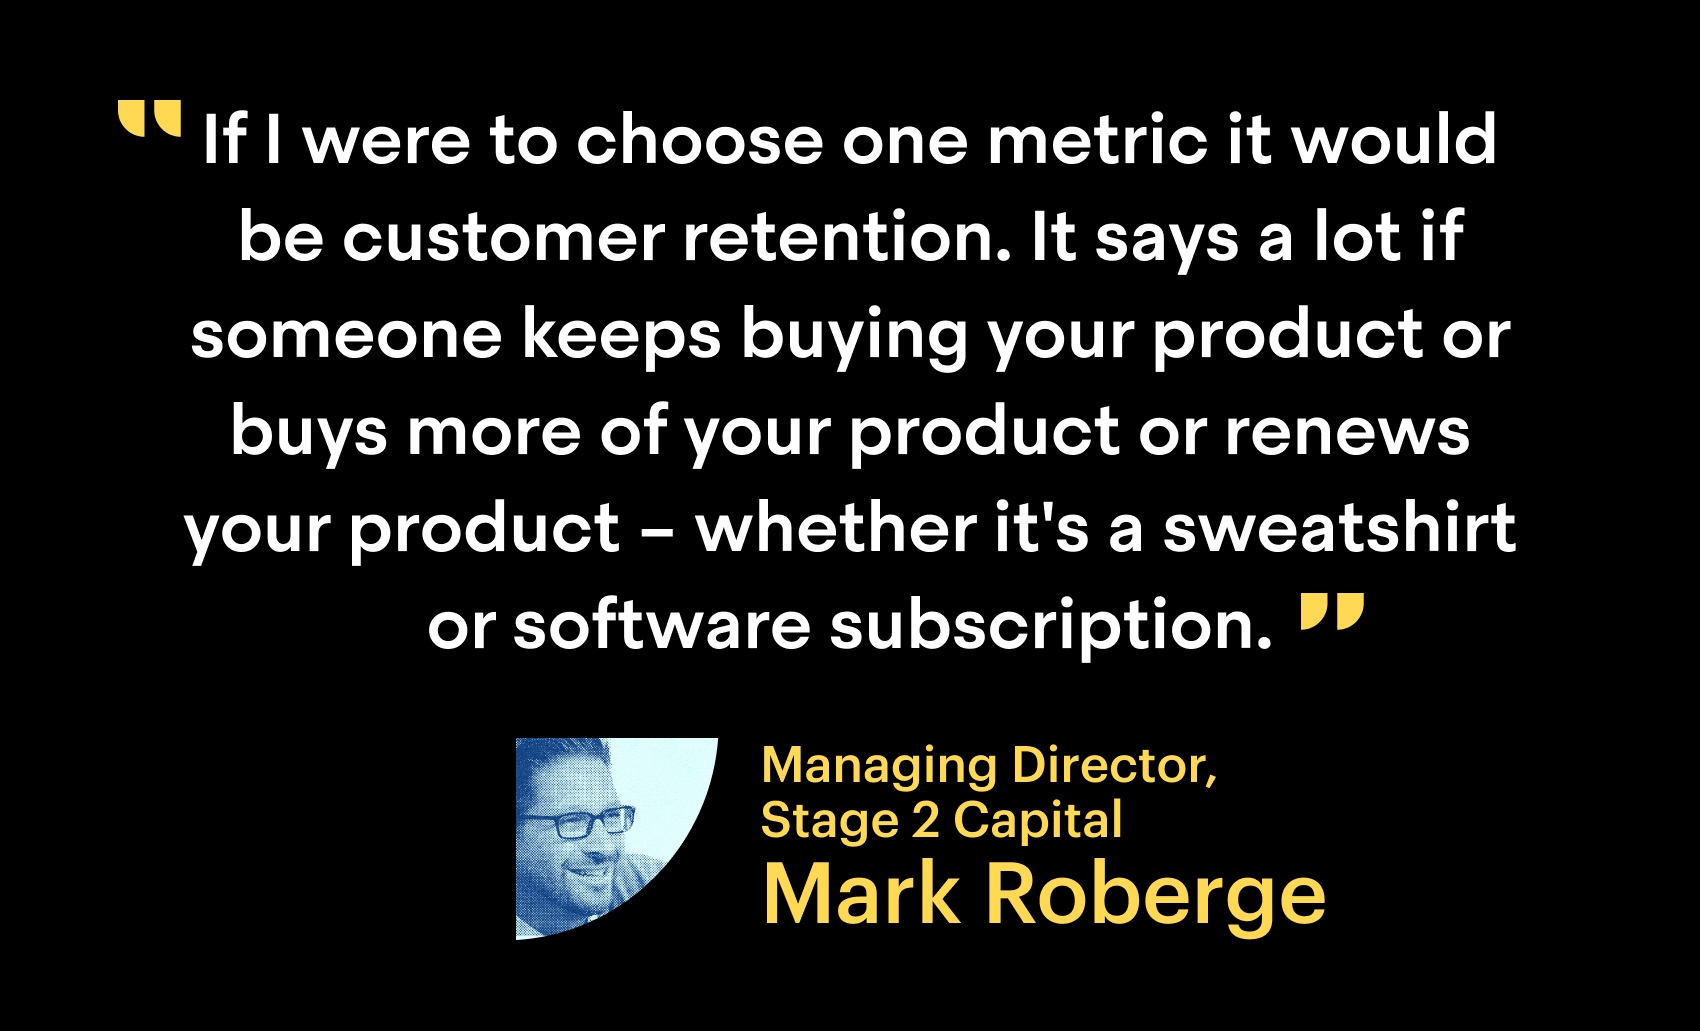 """If I were to choose one metric it would be customer retention. It says a lot if someone keeps buying your product or buys more of your product or renews your product - whether it's a sweatshirt or a subscription."""